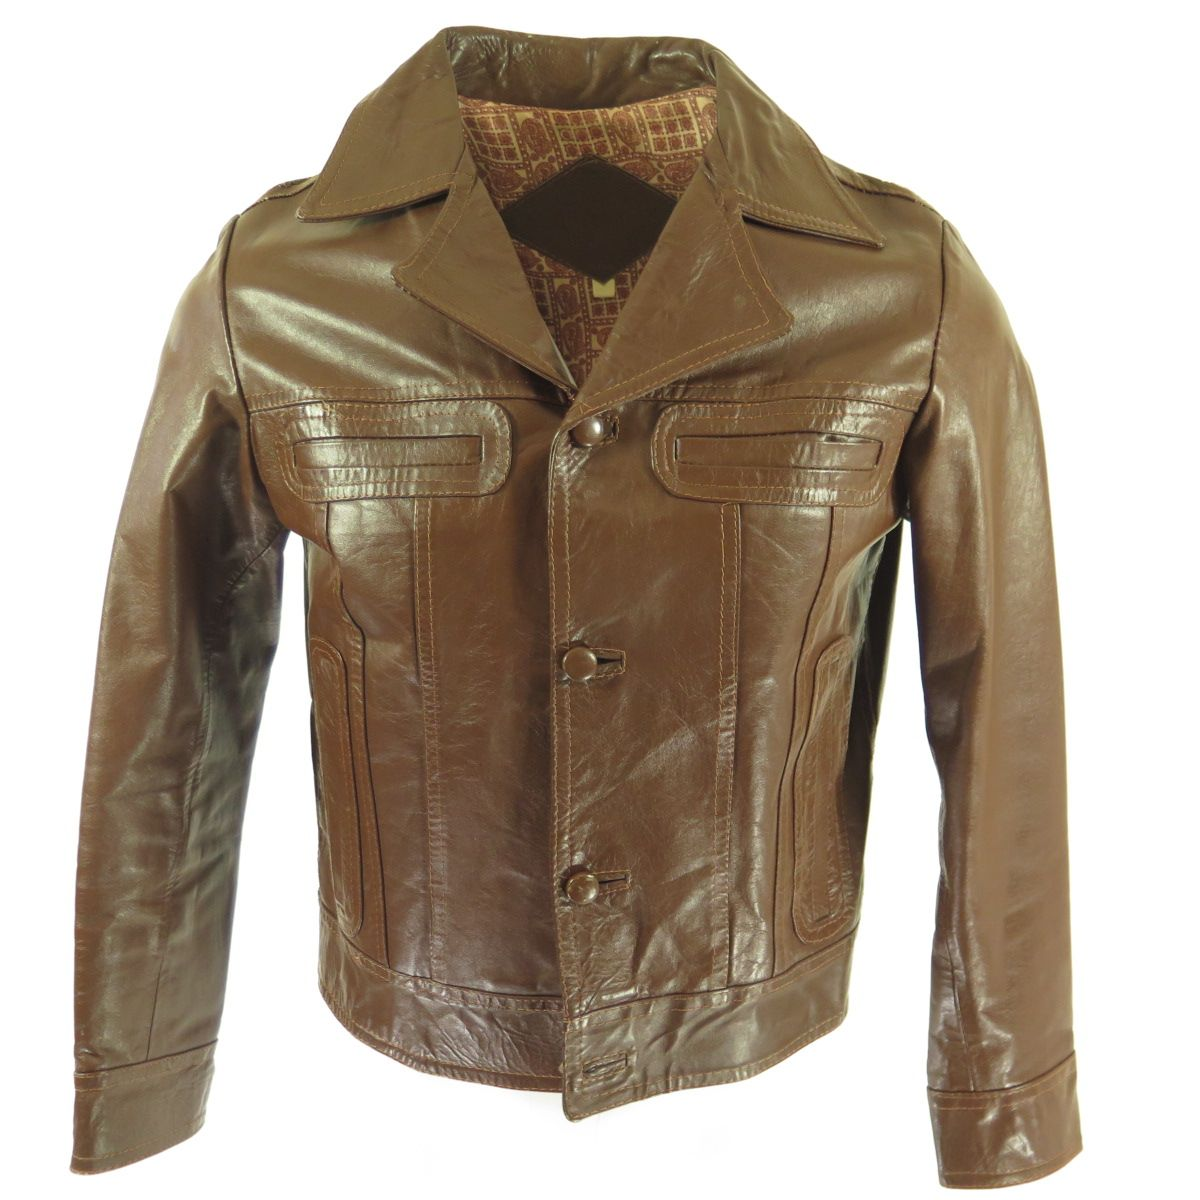 Vintage 70s Leather Jacket Mens Small Brown Paisley Liner Fitted 40 The Clothing Vault Leather Jacket Jackets Leather Jacket Men [ 1200 x 1200 Pixel ]